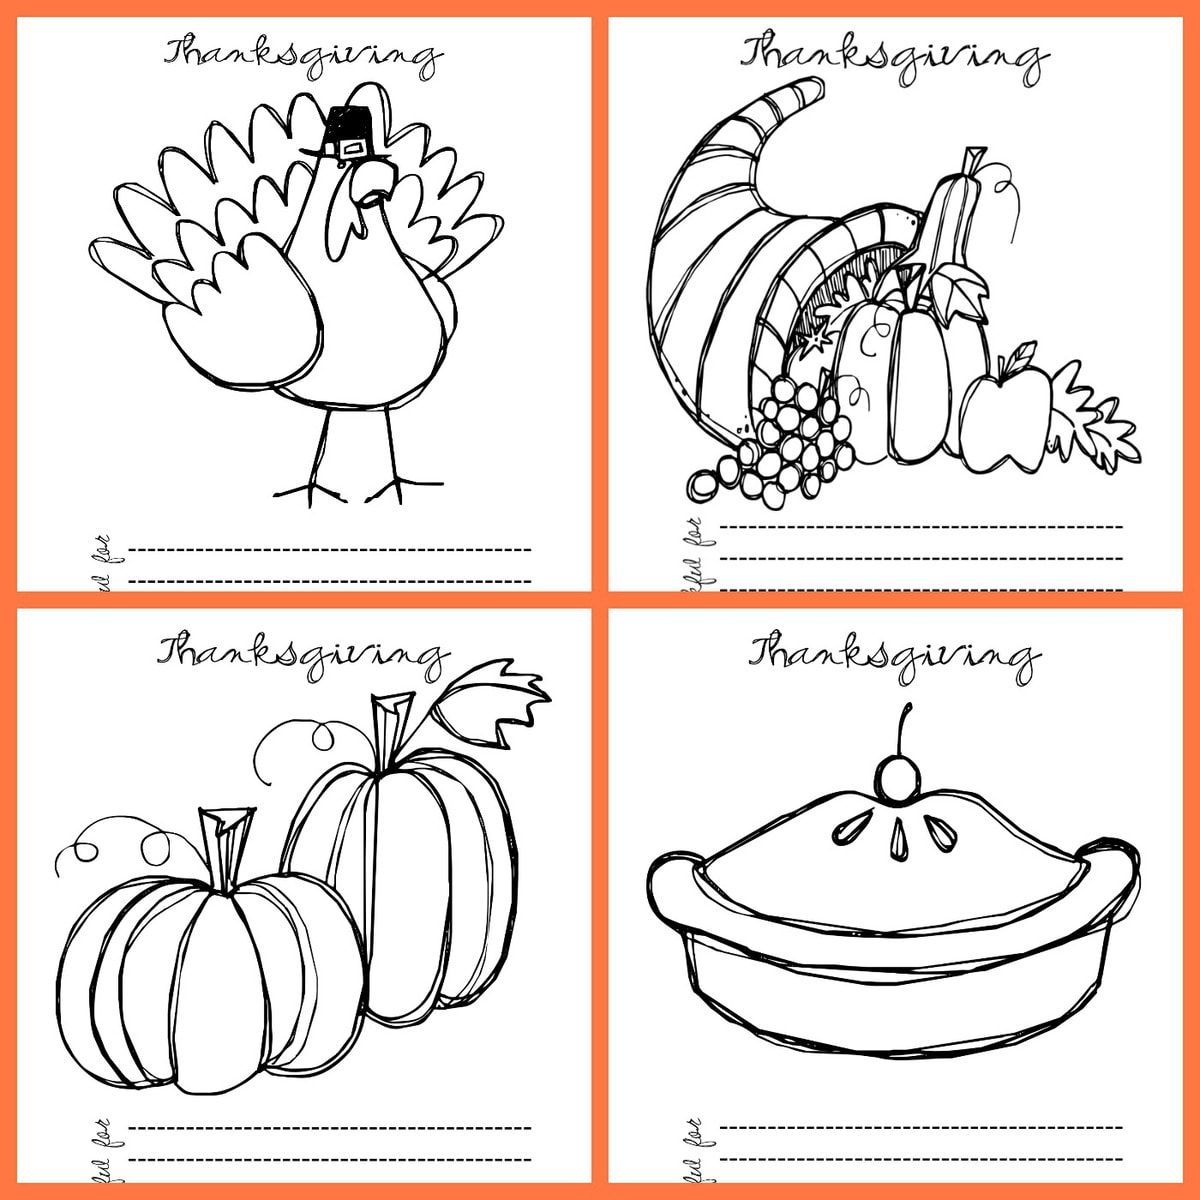 image relating to Thanksgiving Printable Coloring Pages called Totally free Printable Thanksgiving Coloring Web pages Lil Luna